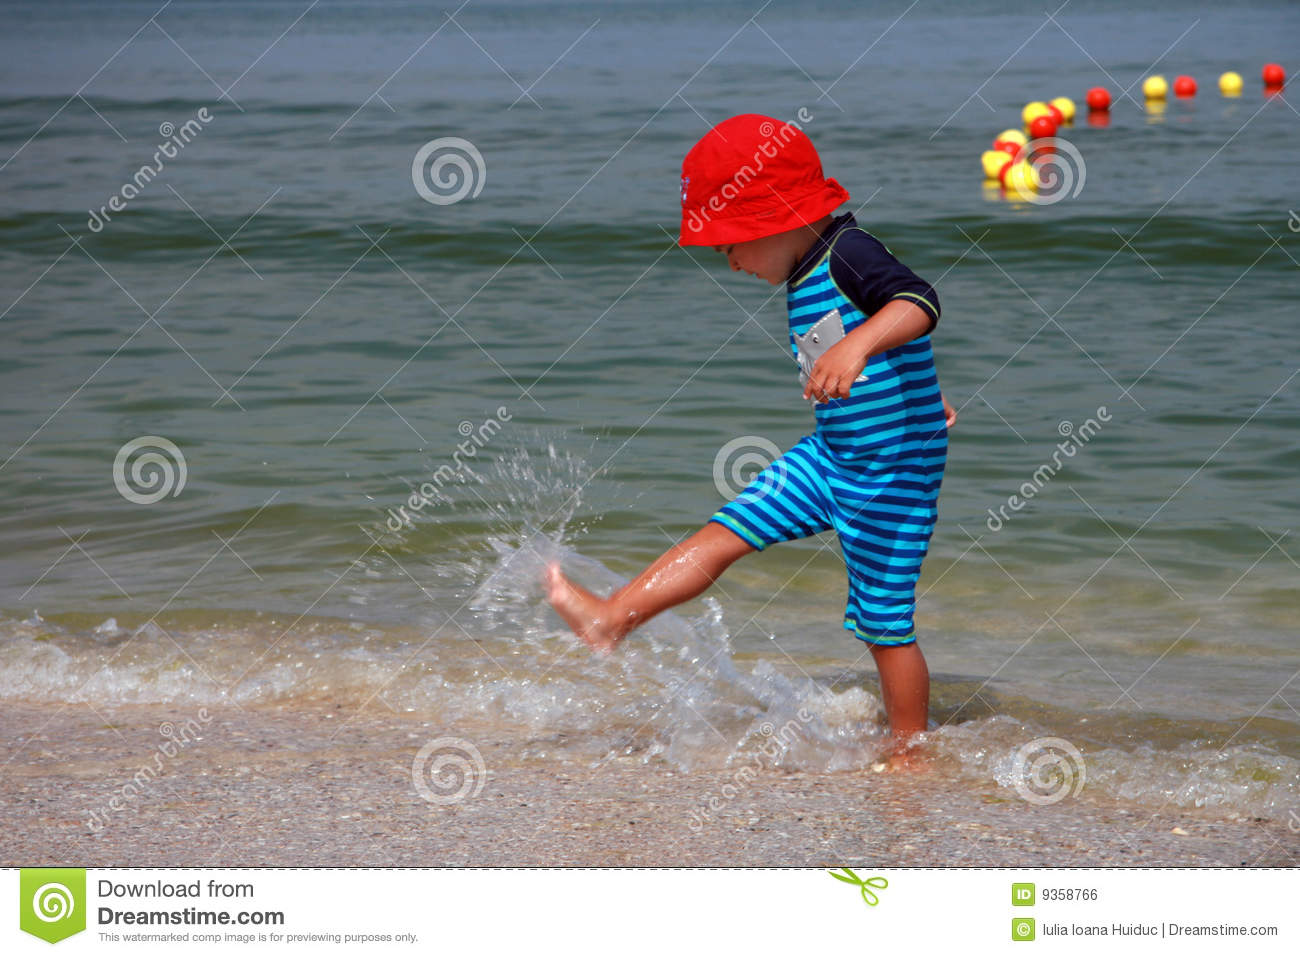 Why is it so quiet on here lately? Boy-playing-surf-9358766